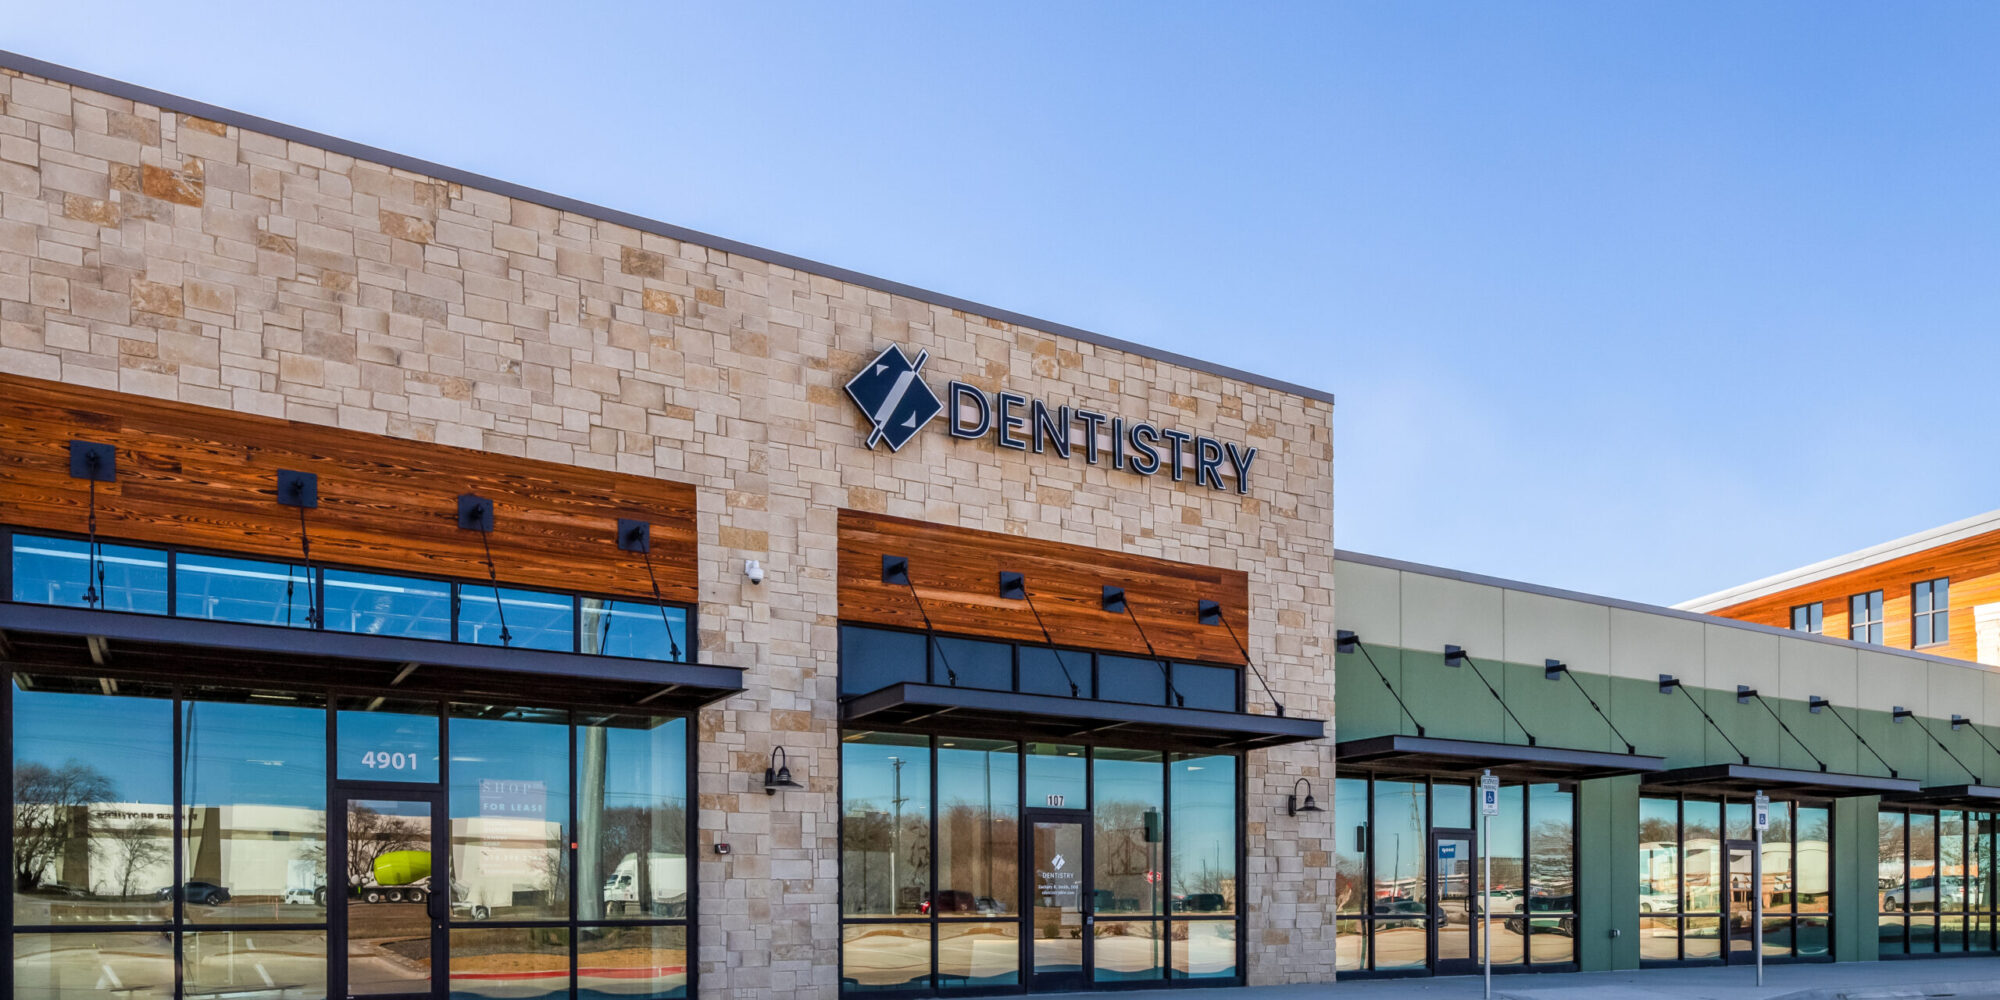 Z Dentistry Sign and Building, Northlake, TX